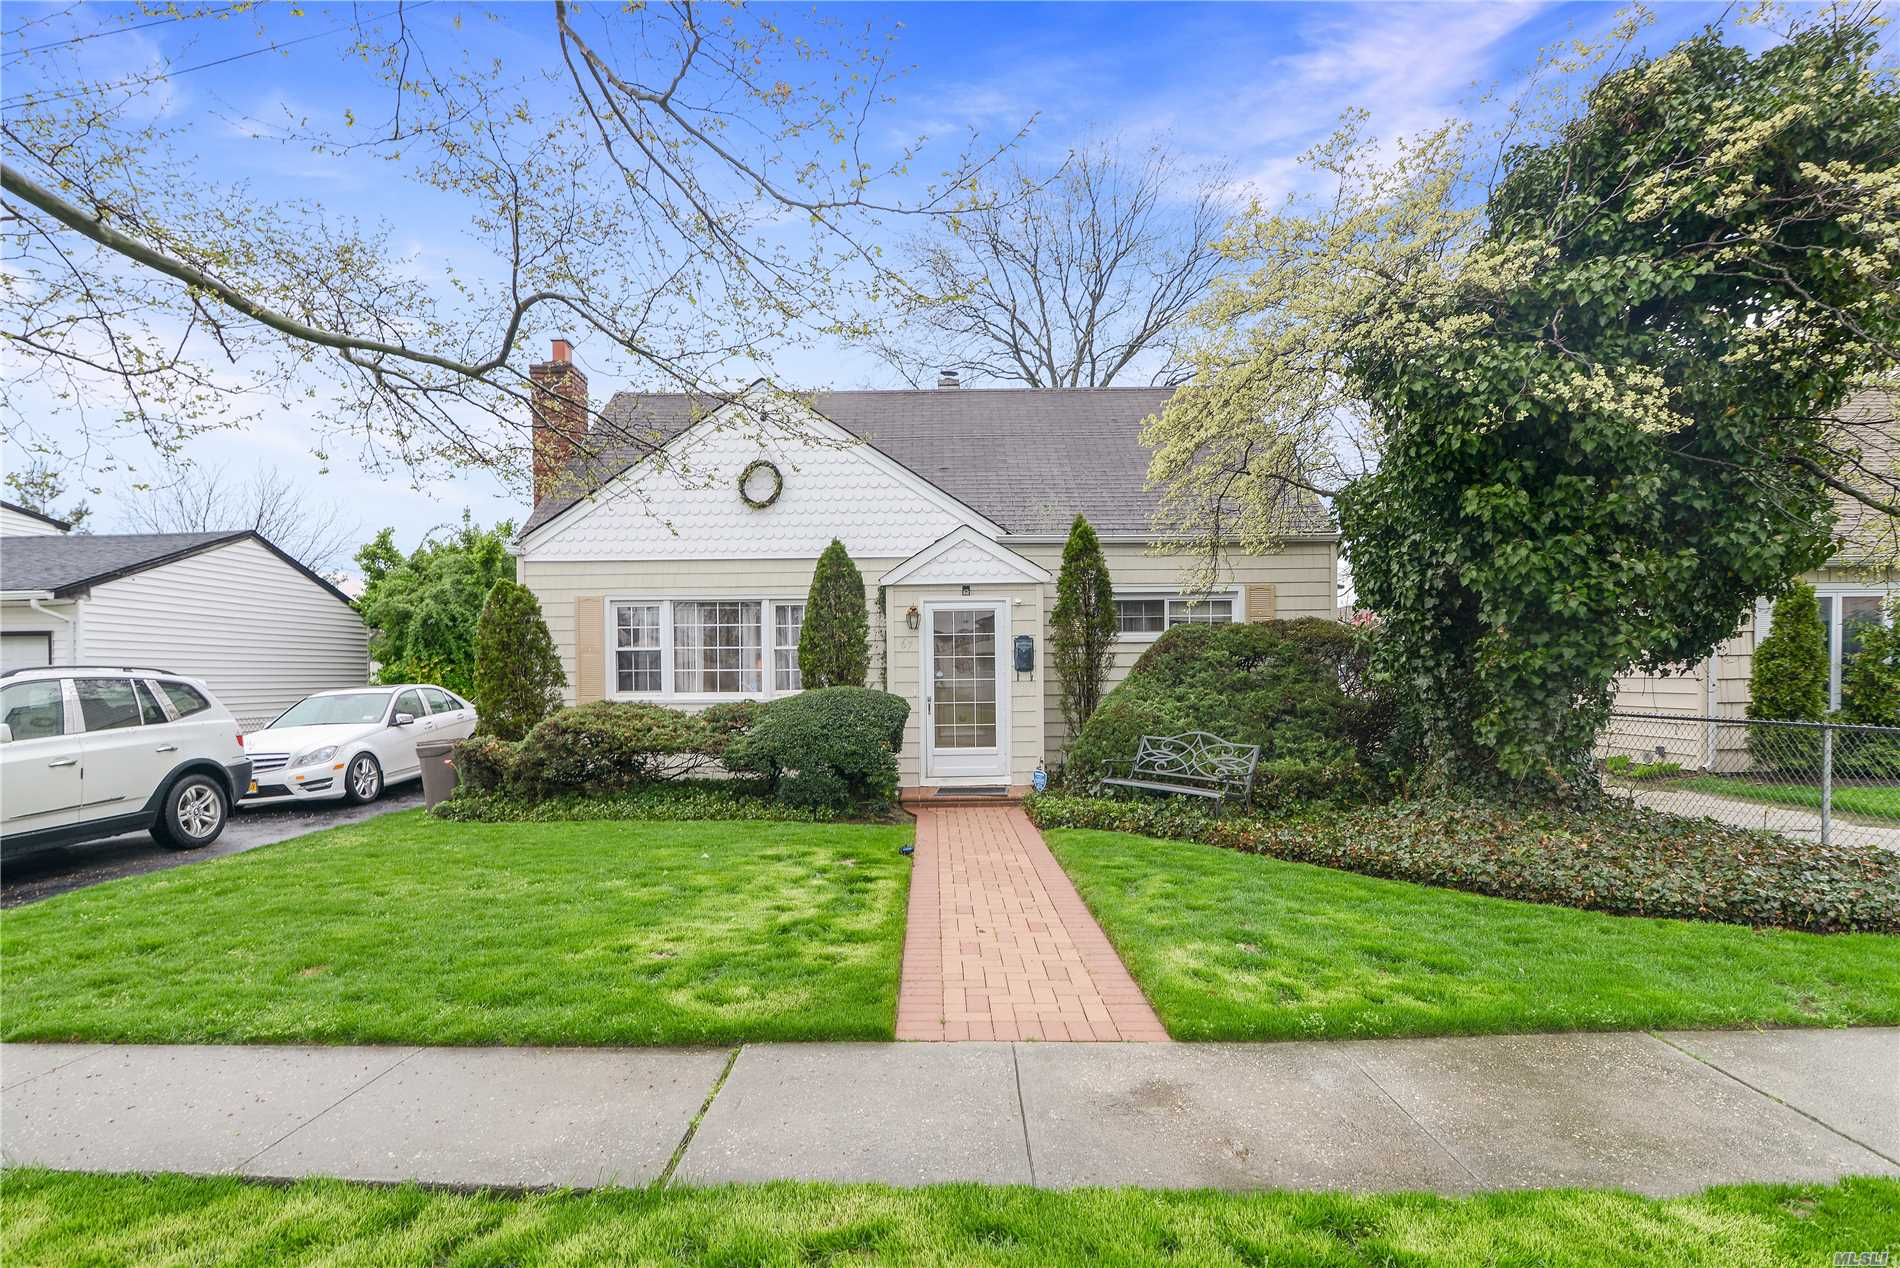 Beautiful Cape Priced To Sell Conveniently Located The Heart Of The Village Of Valley Stream. House Is Just 2 Blocks From Central High & Memorial Junior High. House Features 4 Bedroom, 1 Bath, Working Fireplace, Central Heating/Cooling, Sprawling Backyard, Private Driveway/Garage, & More!